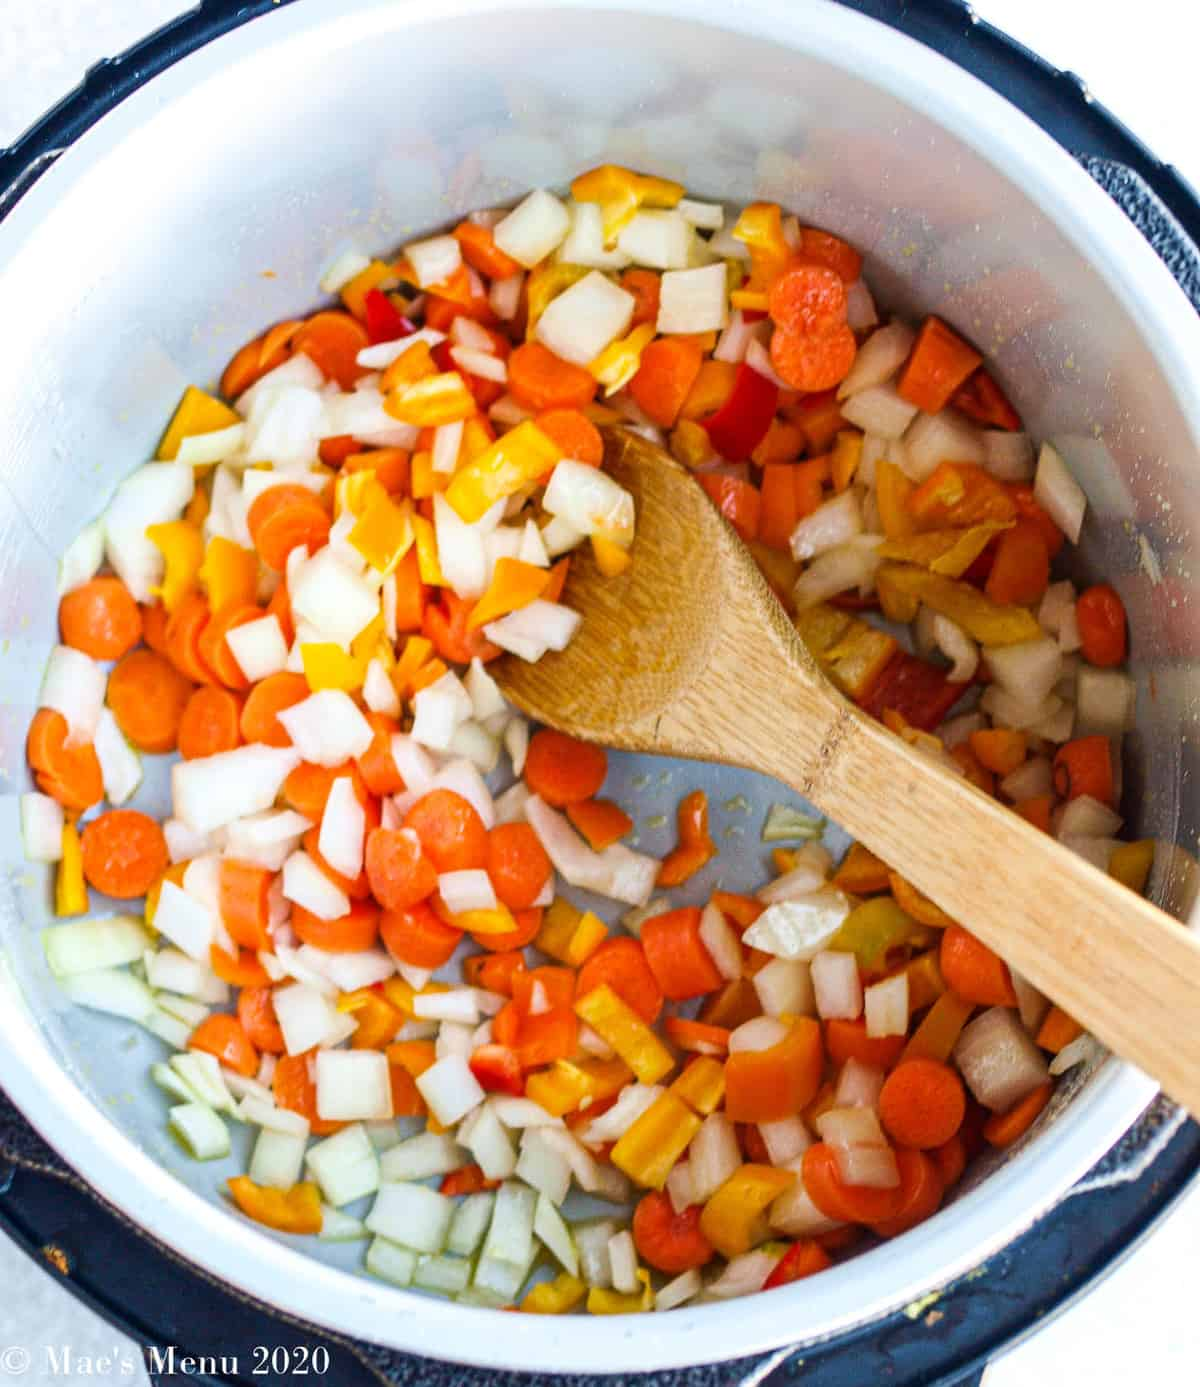 Sauteing peppers, onions, carrots, and celery in an instant pot